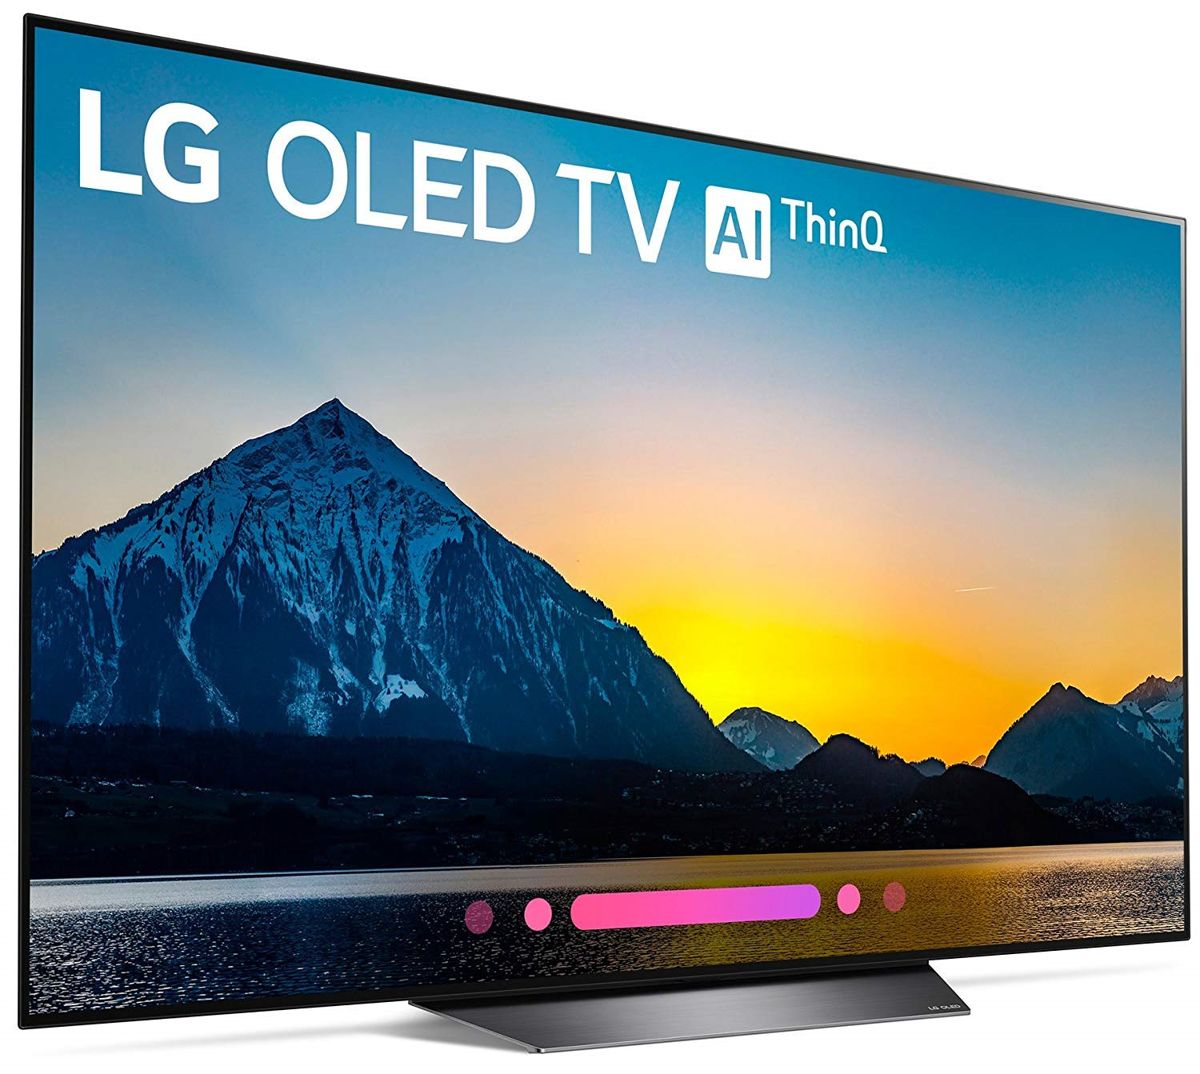 LG Discounts Its 4K OLED TVs To Its 'Best Price Ever